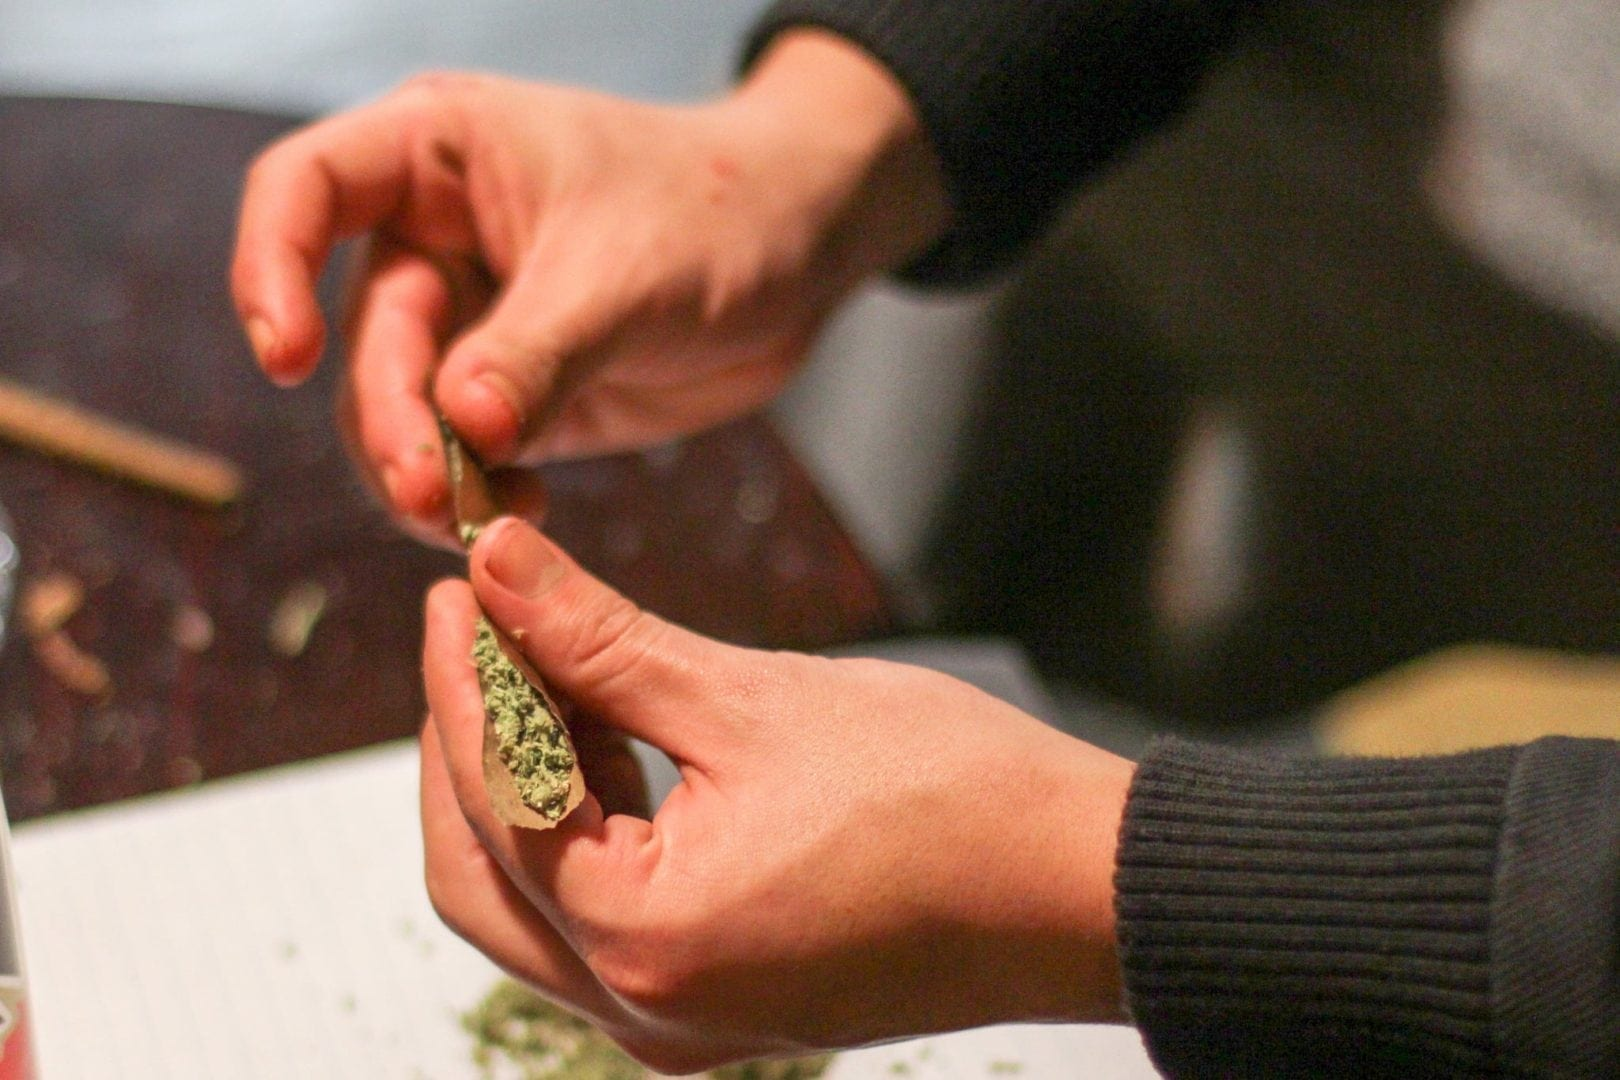 One In Four Young Americans Consume Marijuana, Survey Finds